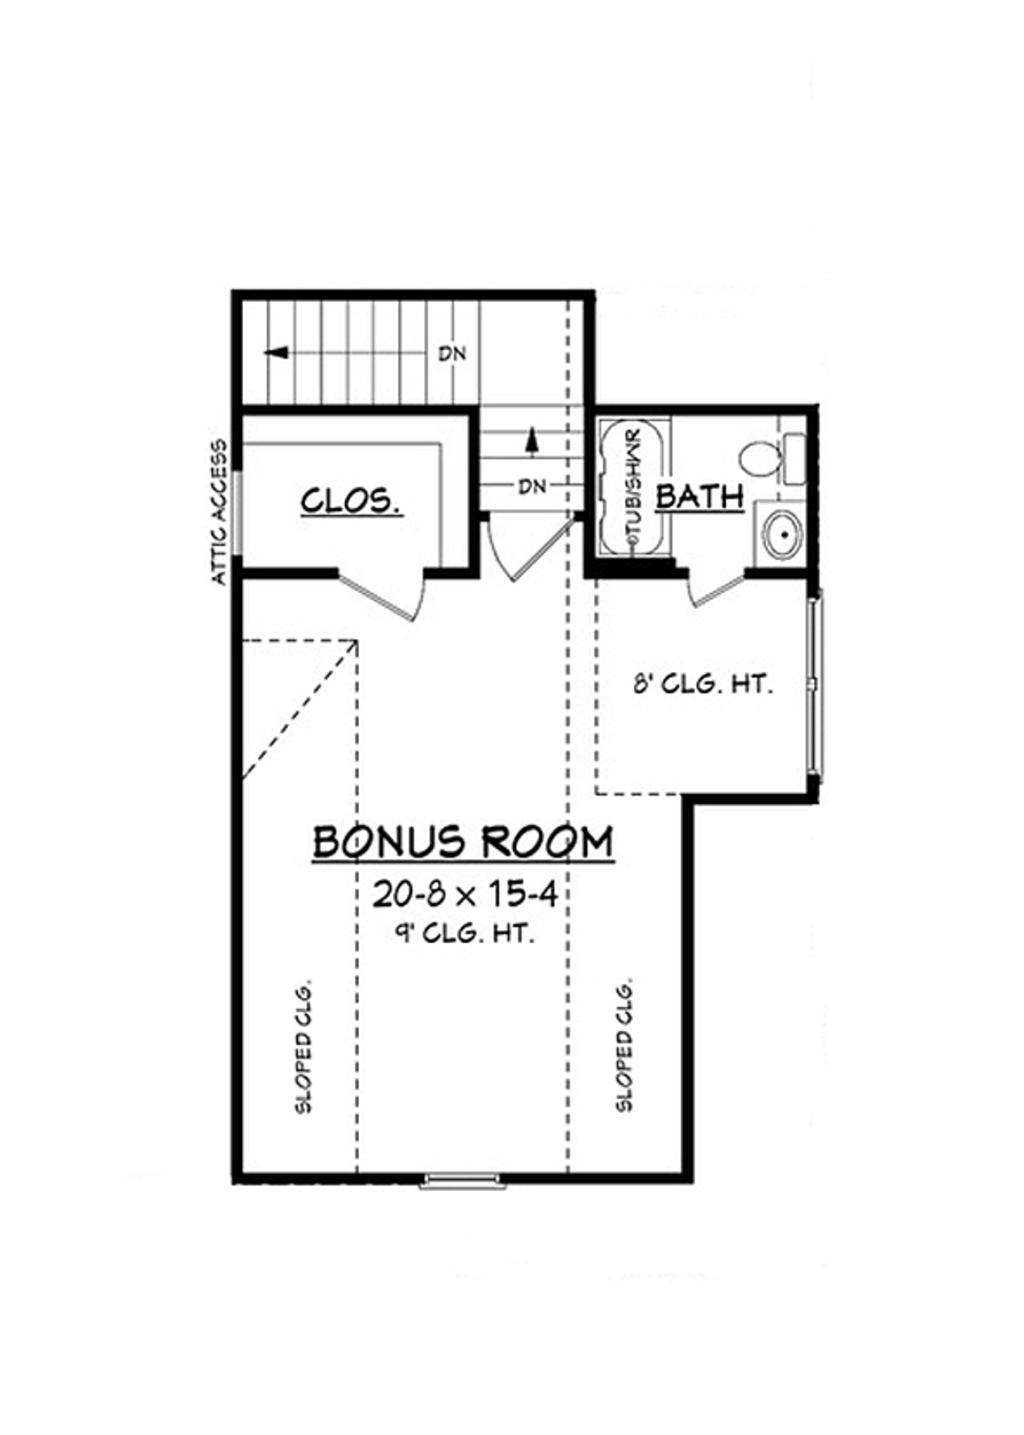 ranch style house plan 3 beds 2 5 baths 2282 sq ft plan 1059 72 floor plan other floor plan